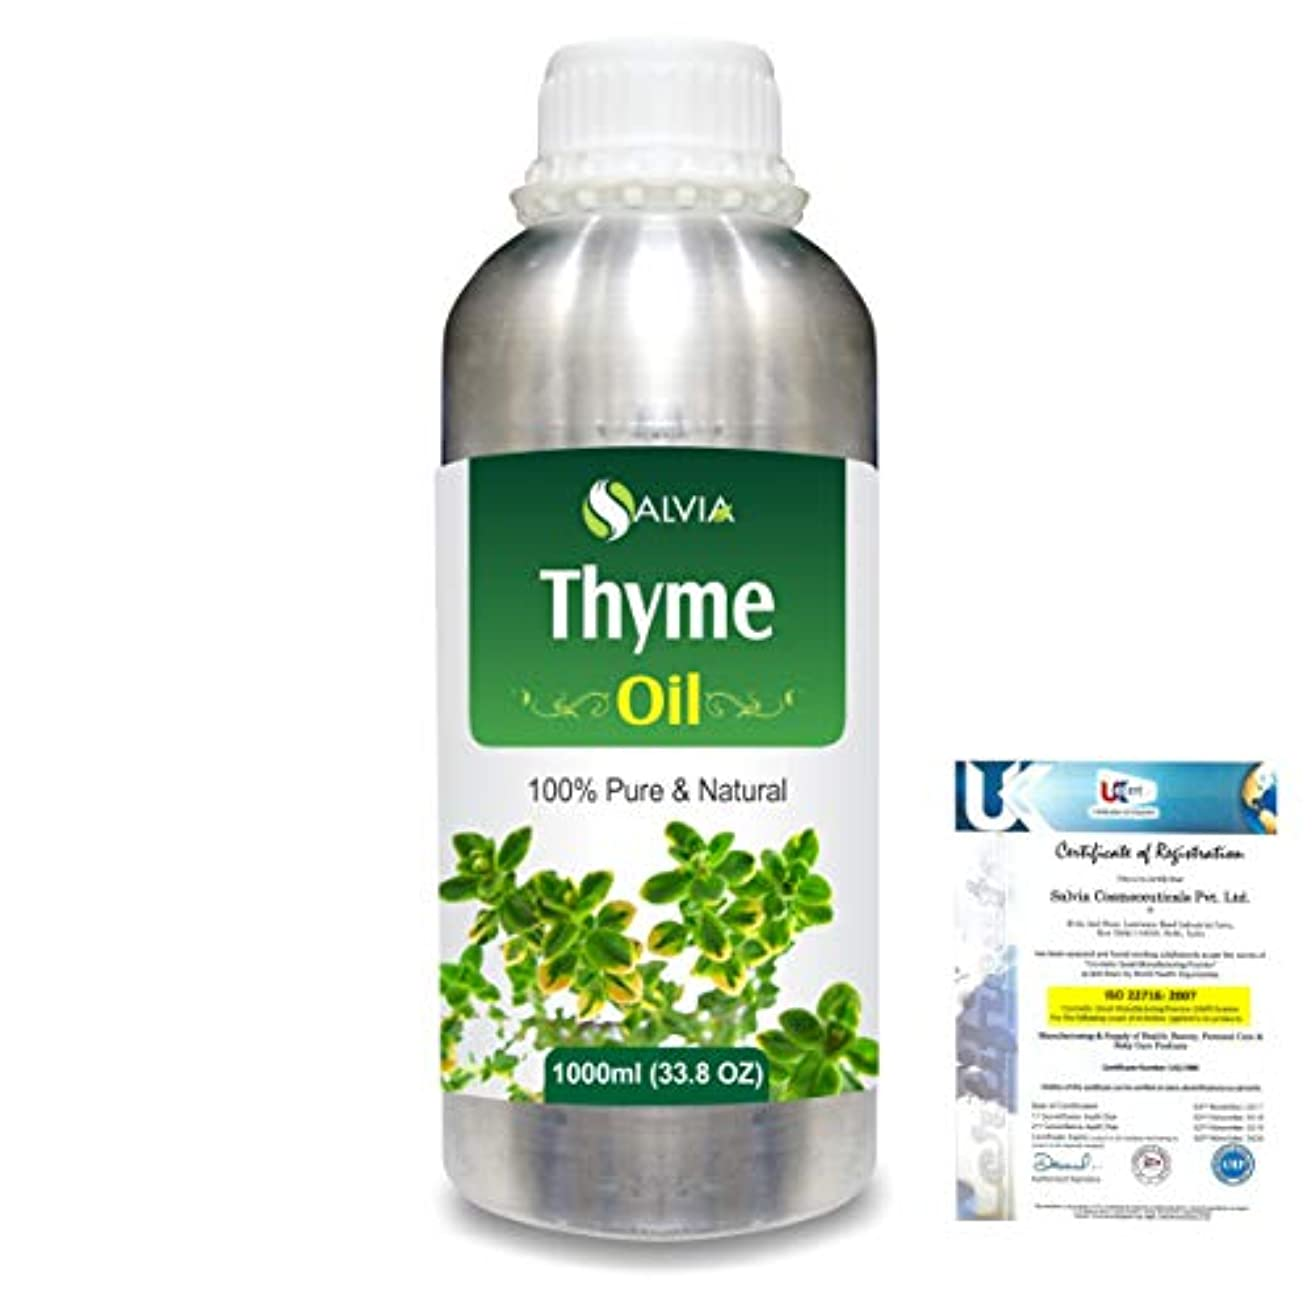 Thyme (Thymus vulgaris) 100% Natural Pure Essential Oil 1000ml/33.8fl.oz.